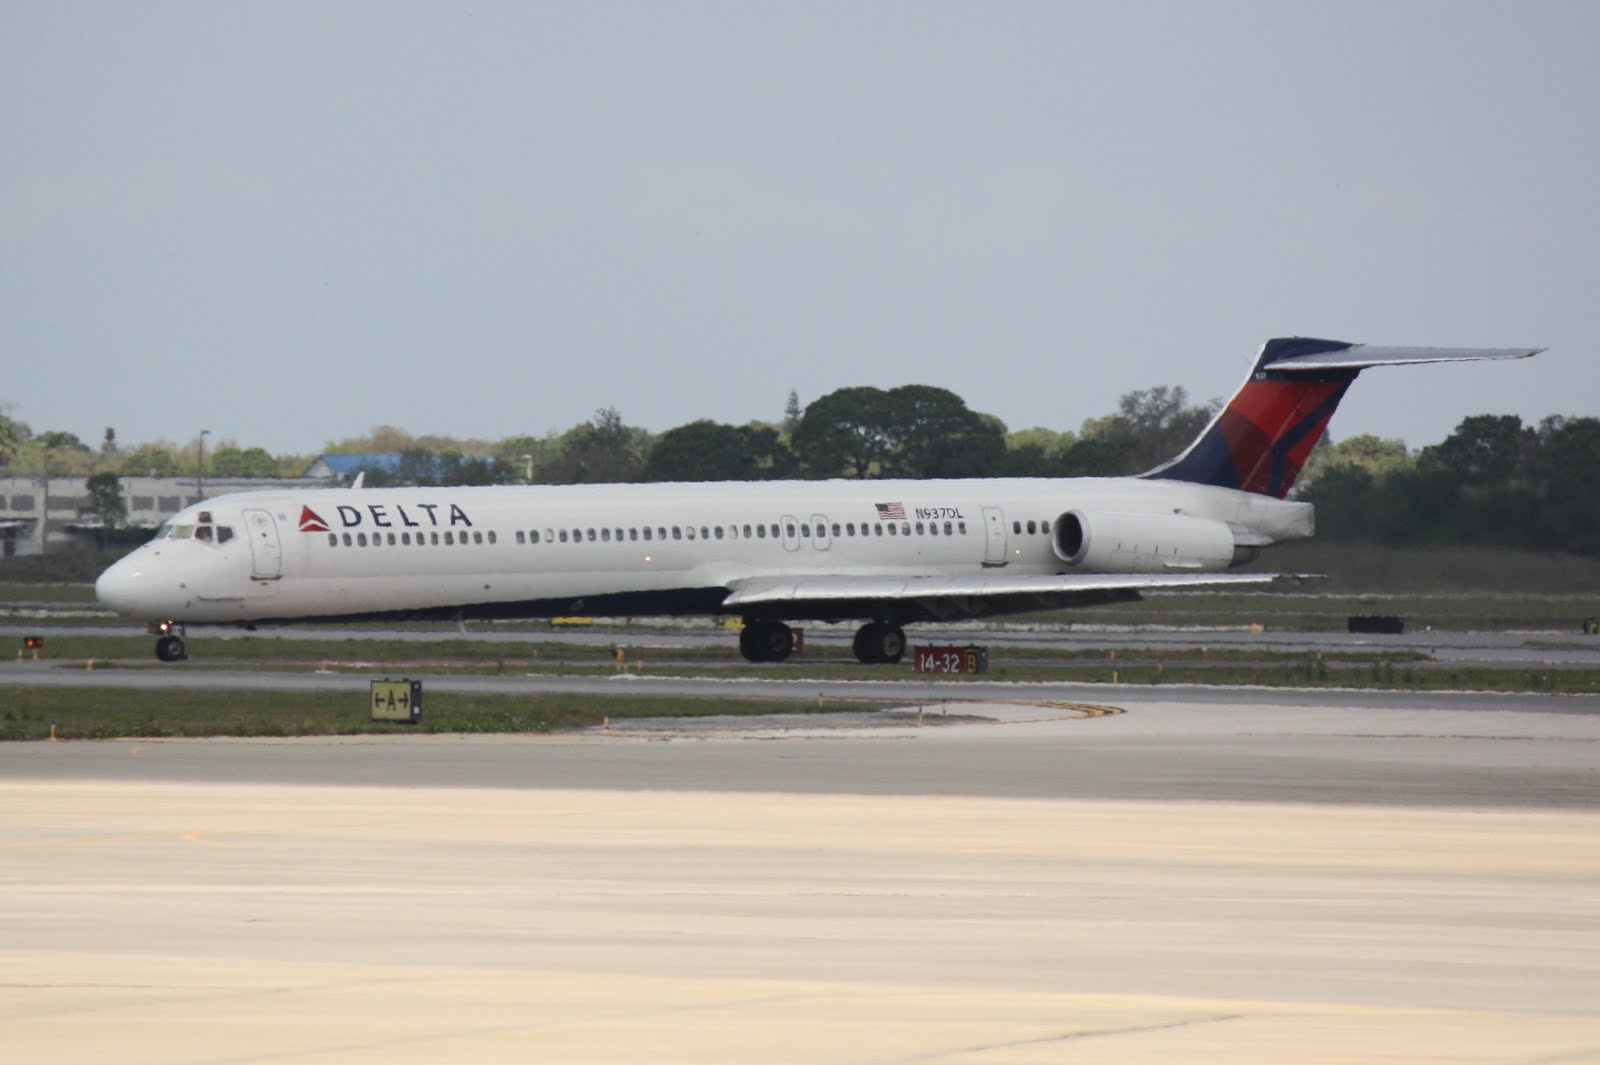 Delta McDonnell Douglas MD-88 (N927DL) | Donten Photography - Above